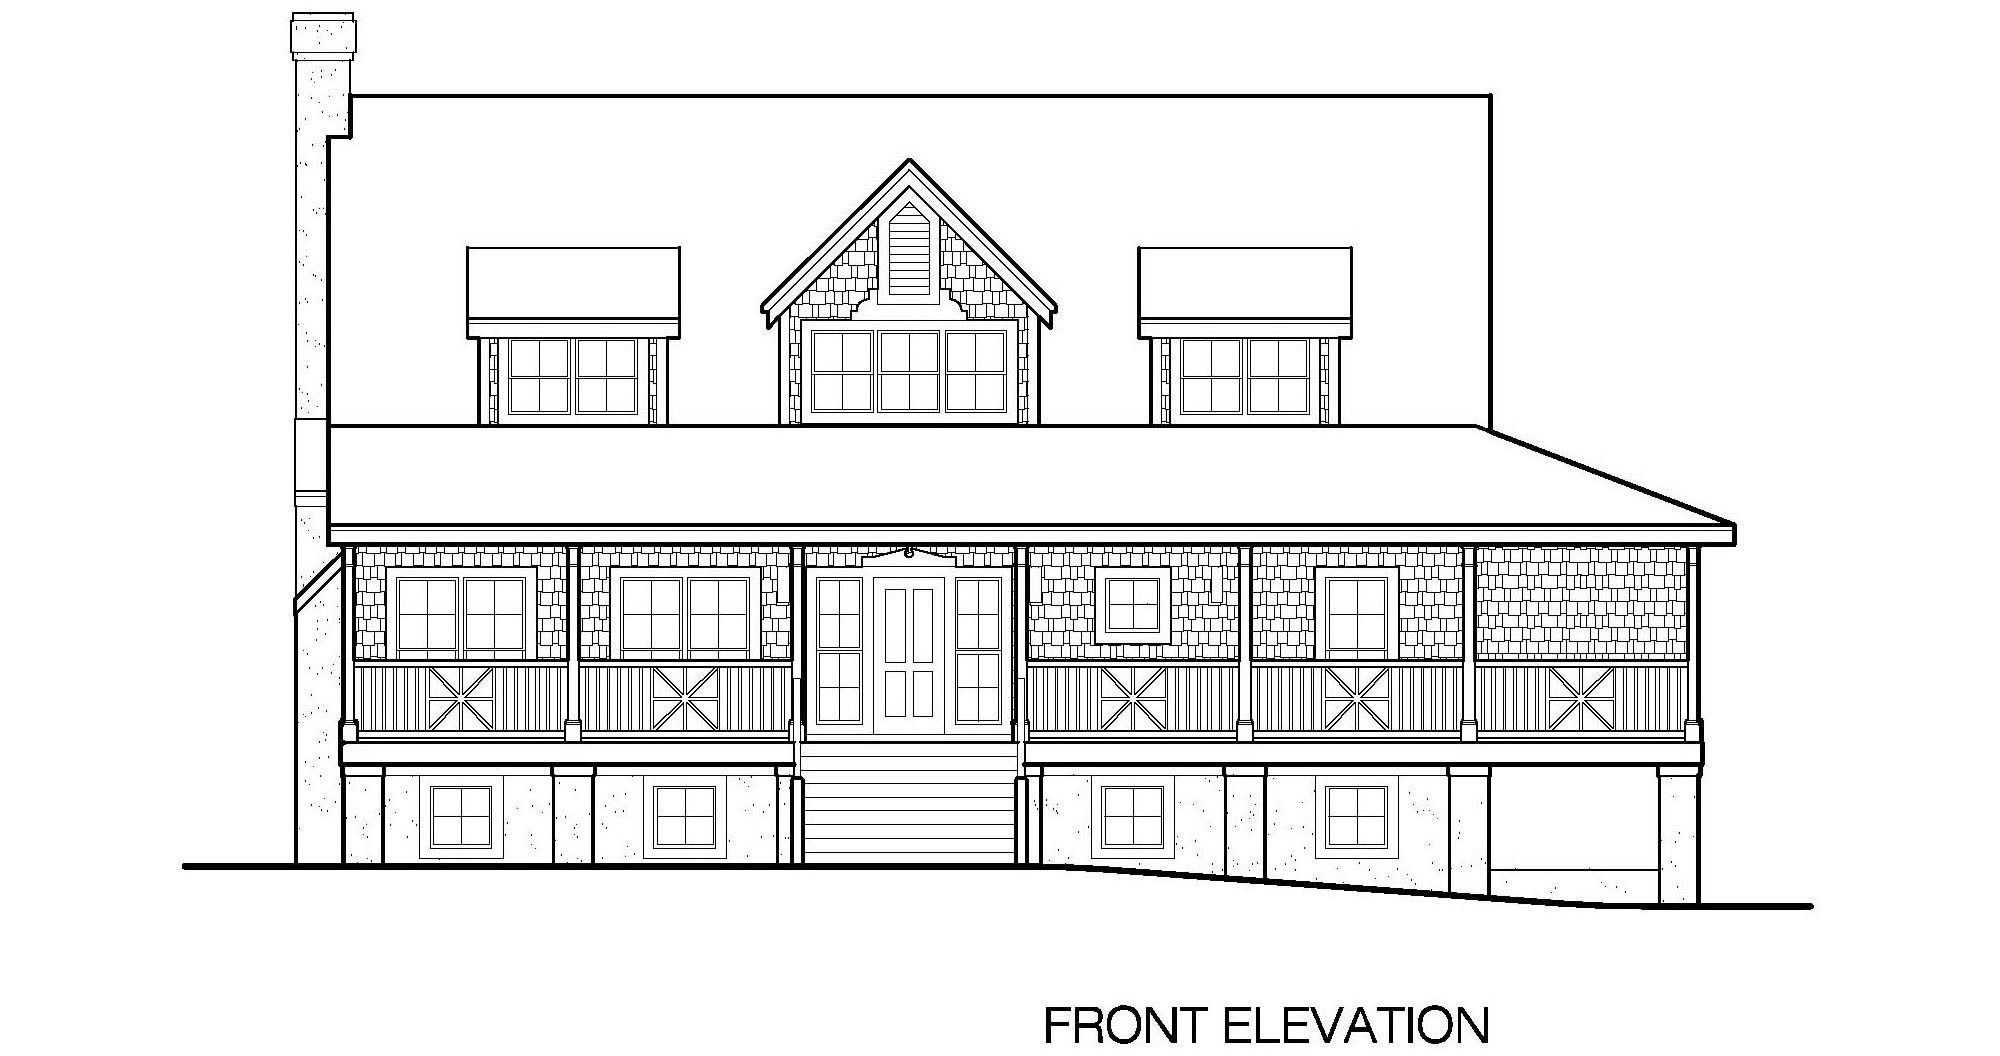 Front Elevation Basements : Fresh old southern plantation house plans floor ideas